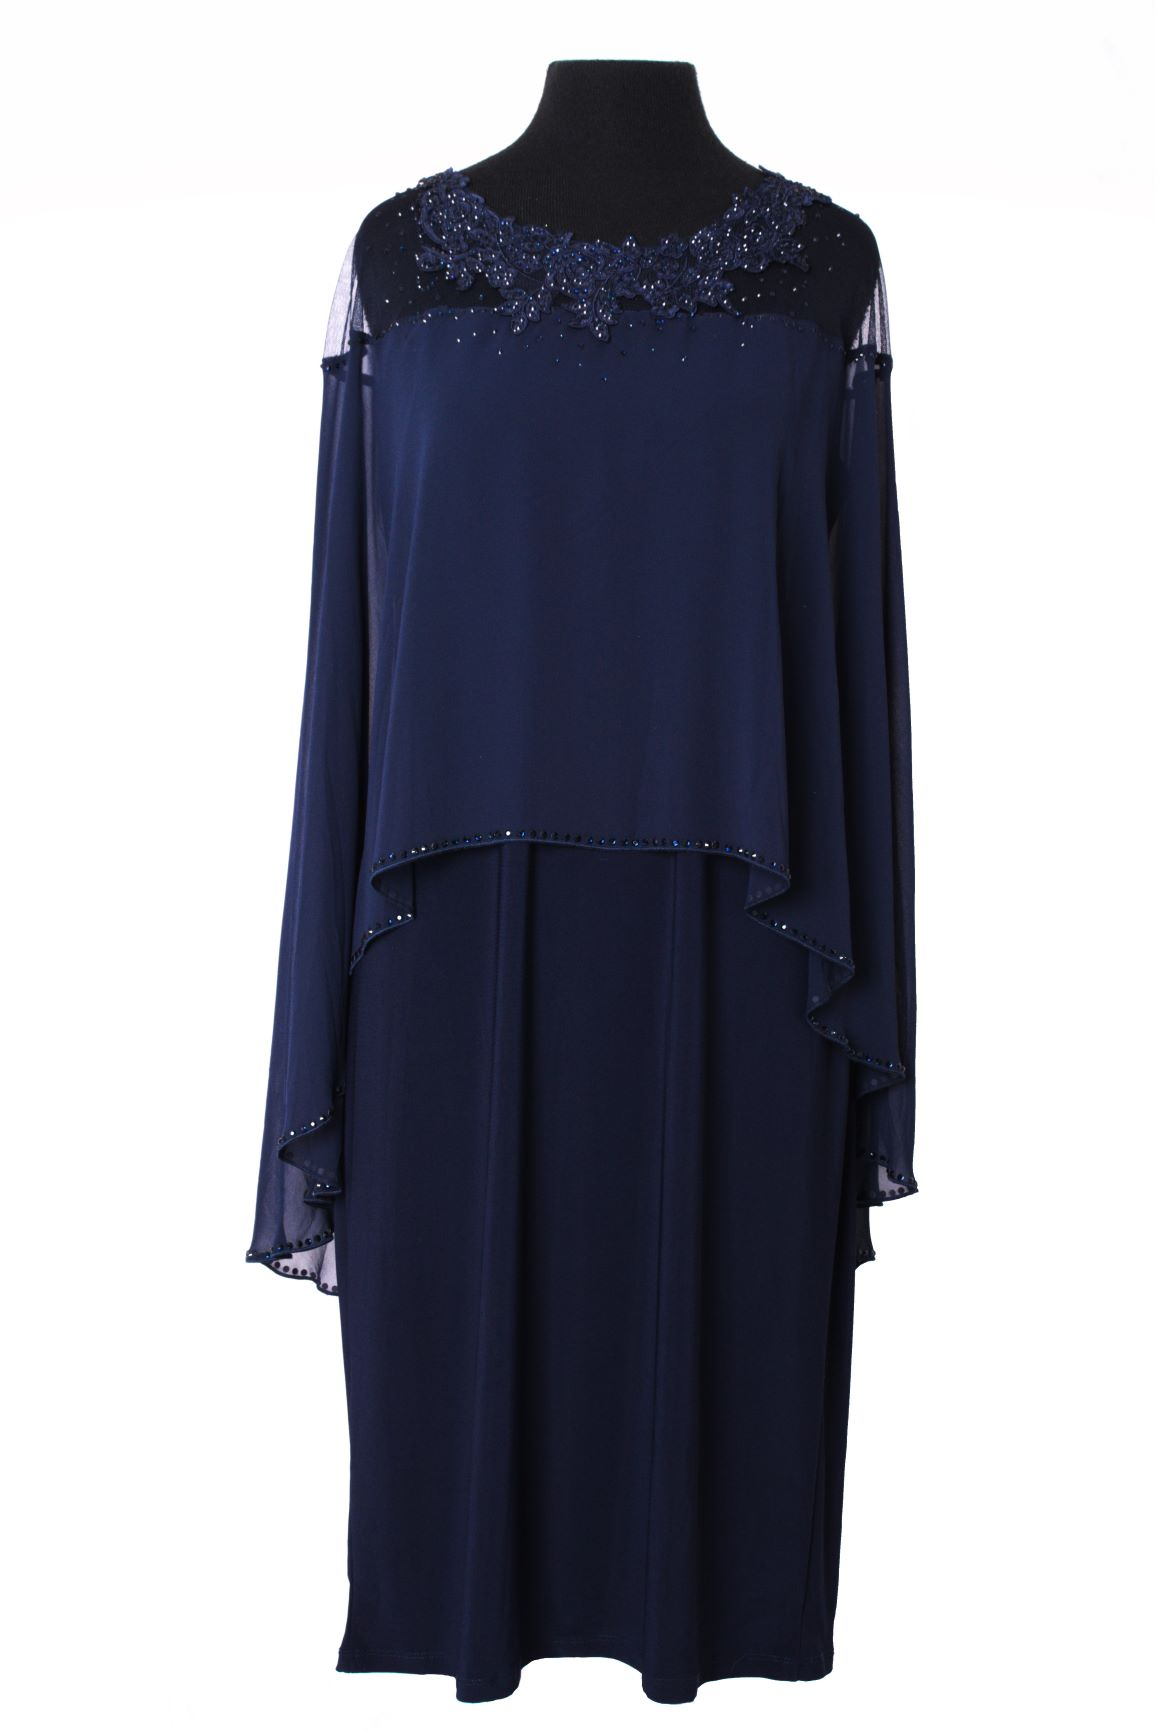 Formal Cocktail Evening Dress with Upper Lace - Navy Blue